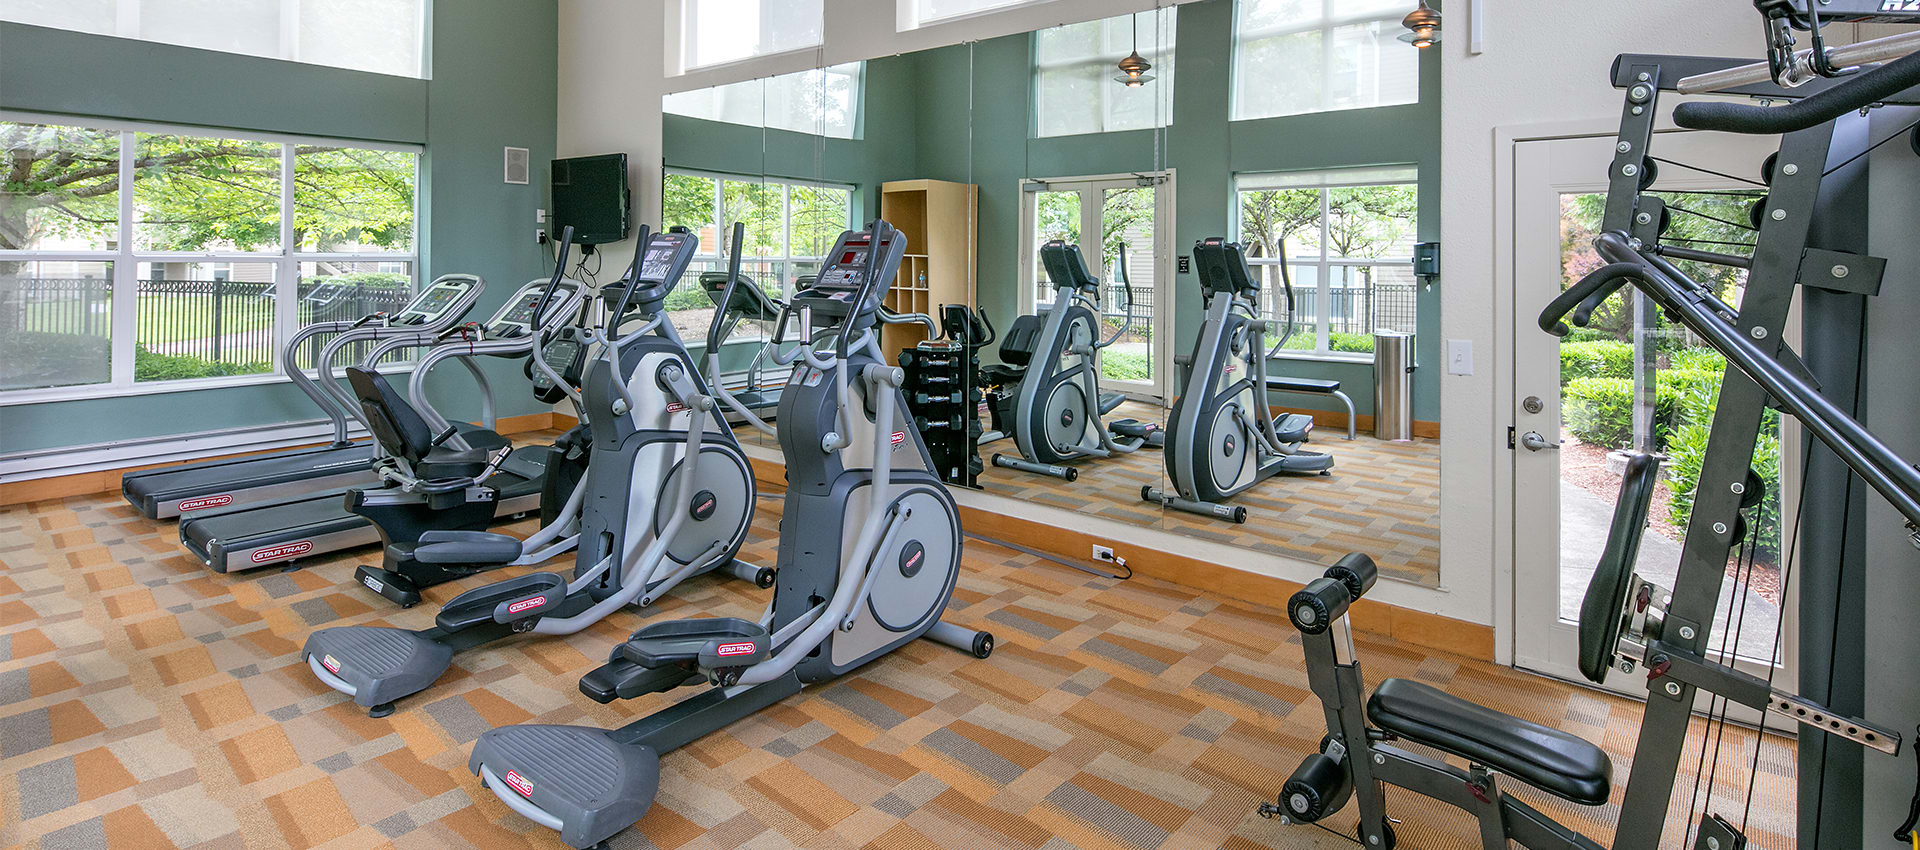 Fitness center at Center Pointe Apartment Homes in Beaverton, Oregon